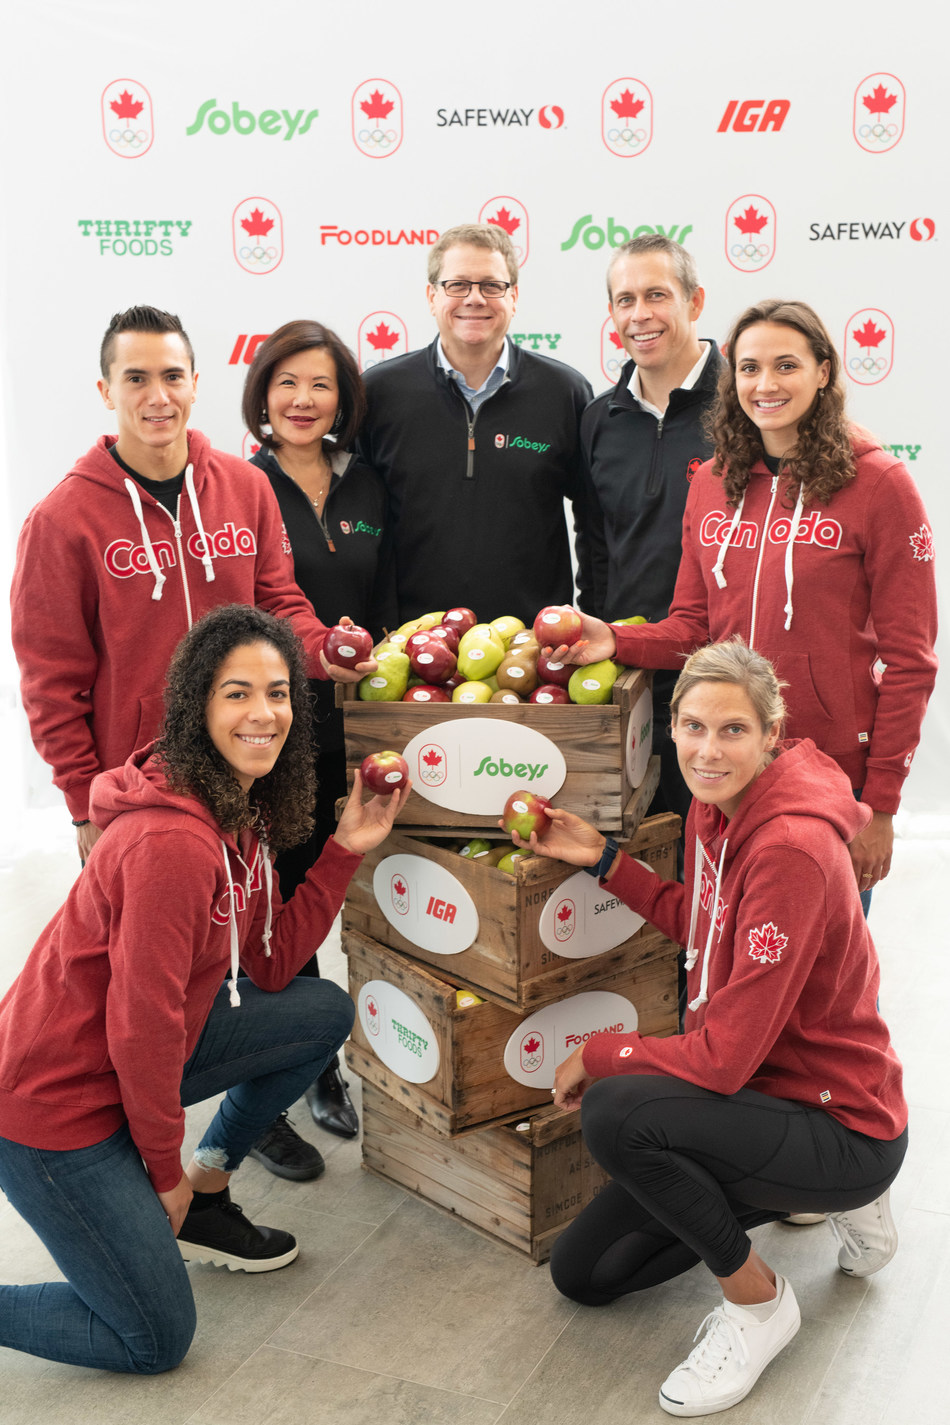 MISSISSAUGA, Ont. - Canadian athletes join Empire Company CEO, Michael Medline and COC CEO, David Shoemaker to celebrate historic partnership between Sobeys Inc. and Team Canada, announcing Sobeys Inc. as the first-ever Official Grocer of Team Canada. From left to right: (Back Row) Sean McColl (Sport Climbing), Sobeys Inc. SVP Marketing Sandra Sanderson, Empire Company CEO Michael Medline, COC CEO David Shoemaker, Kylie Masse (Swimming), (Front Row) Kia Nurse (Basketball), Sarah Pavan (Beach Volleyball), seen at the Team Canada-Sobeys Inc. partnership launch on Monday, October 7, 2019. (CNW Group/Empire Company Limited)